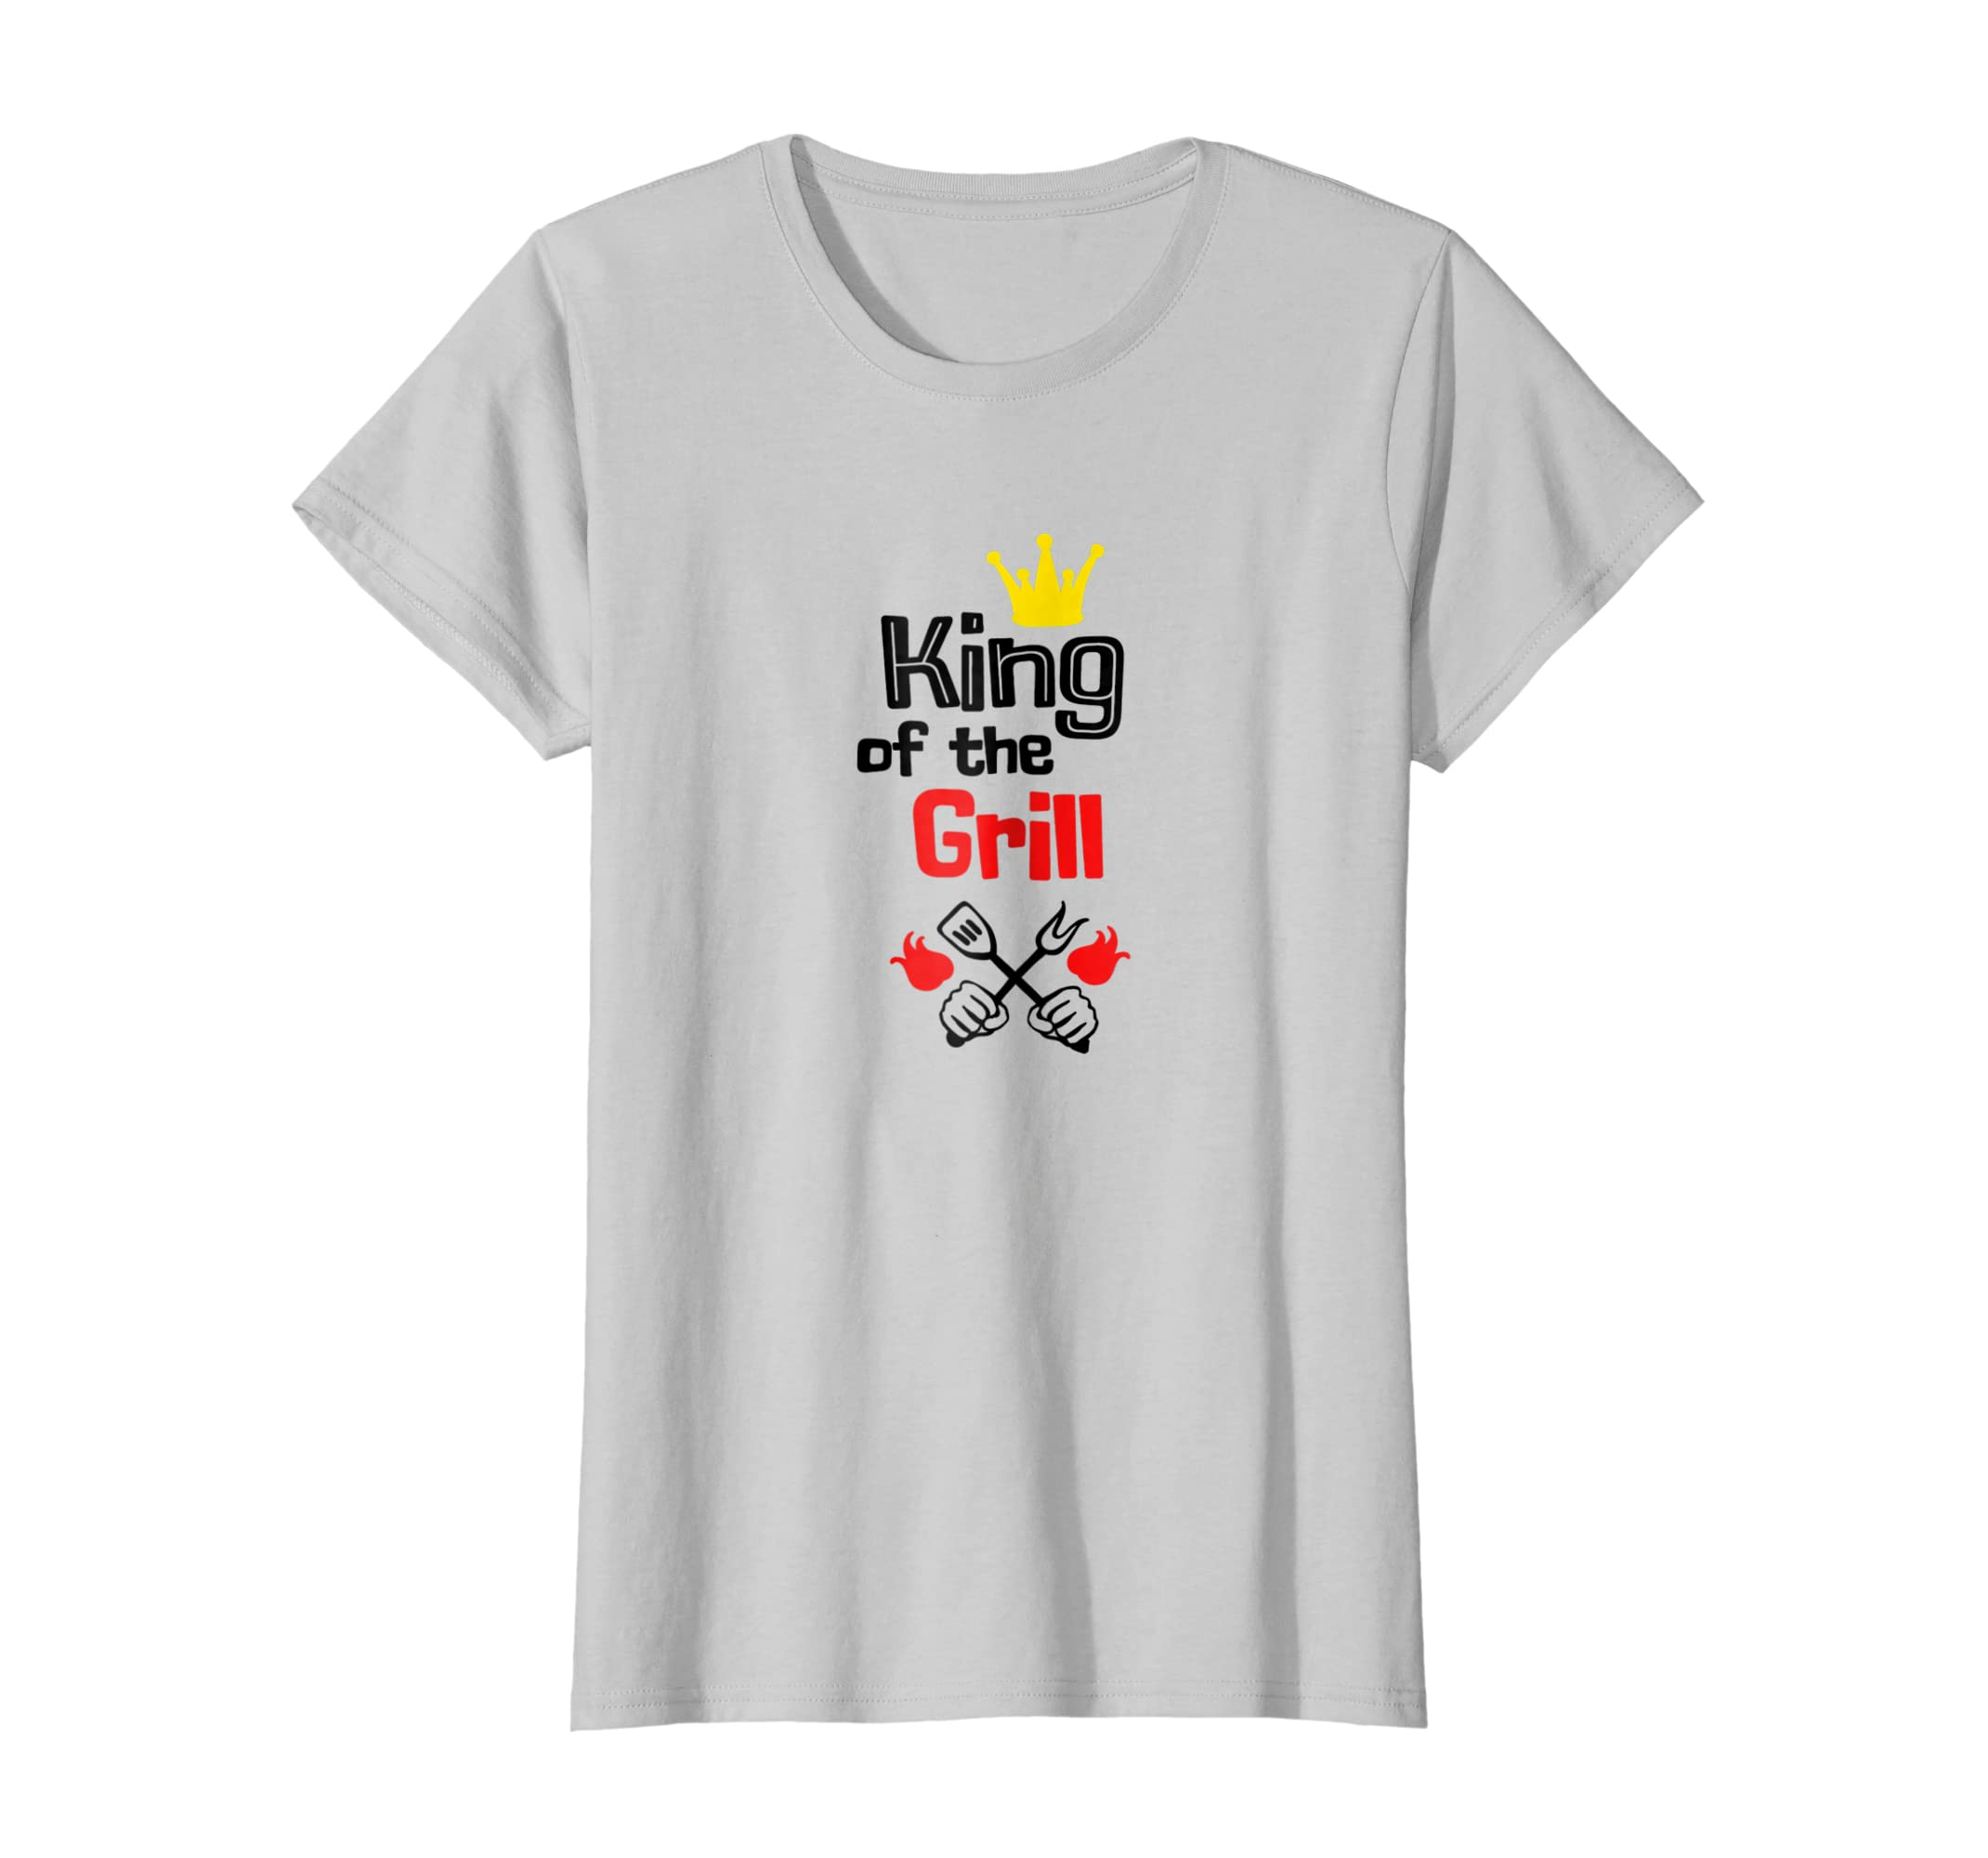 52e419c1 Amazon.com: Funny BBQ T Shirt King Of The Grill Barbecue Dads Gift: Clothing